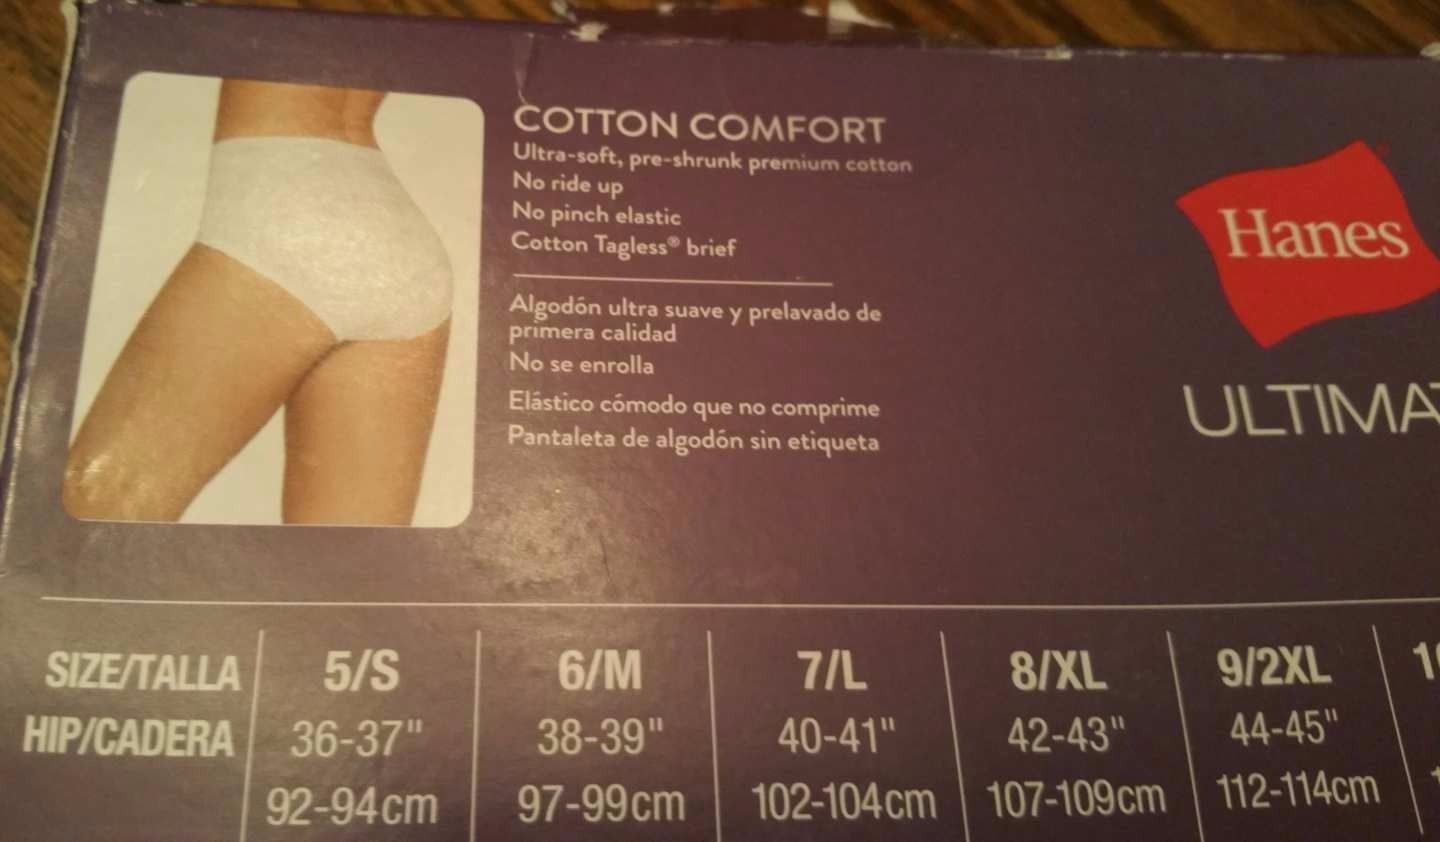 55092a3b1ee3 Hanes Ultimate Cotton Comfort Panties 9/2XL 3Pk Bikini OR 4PK Brief Tagless  New